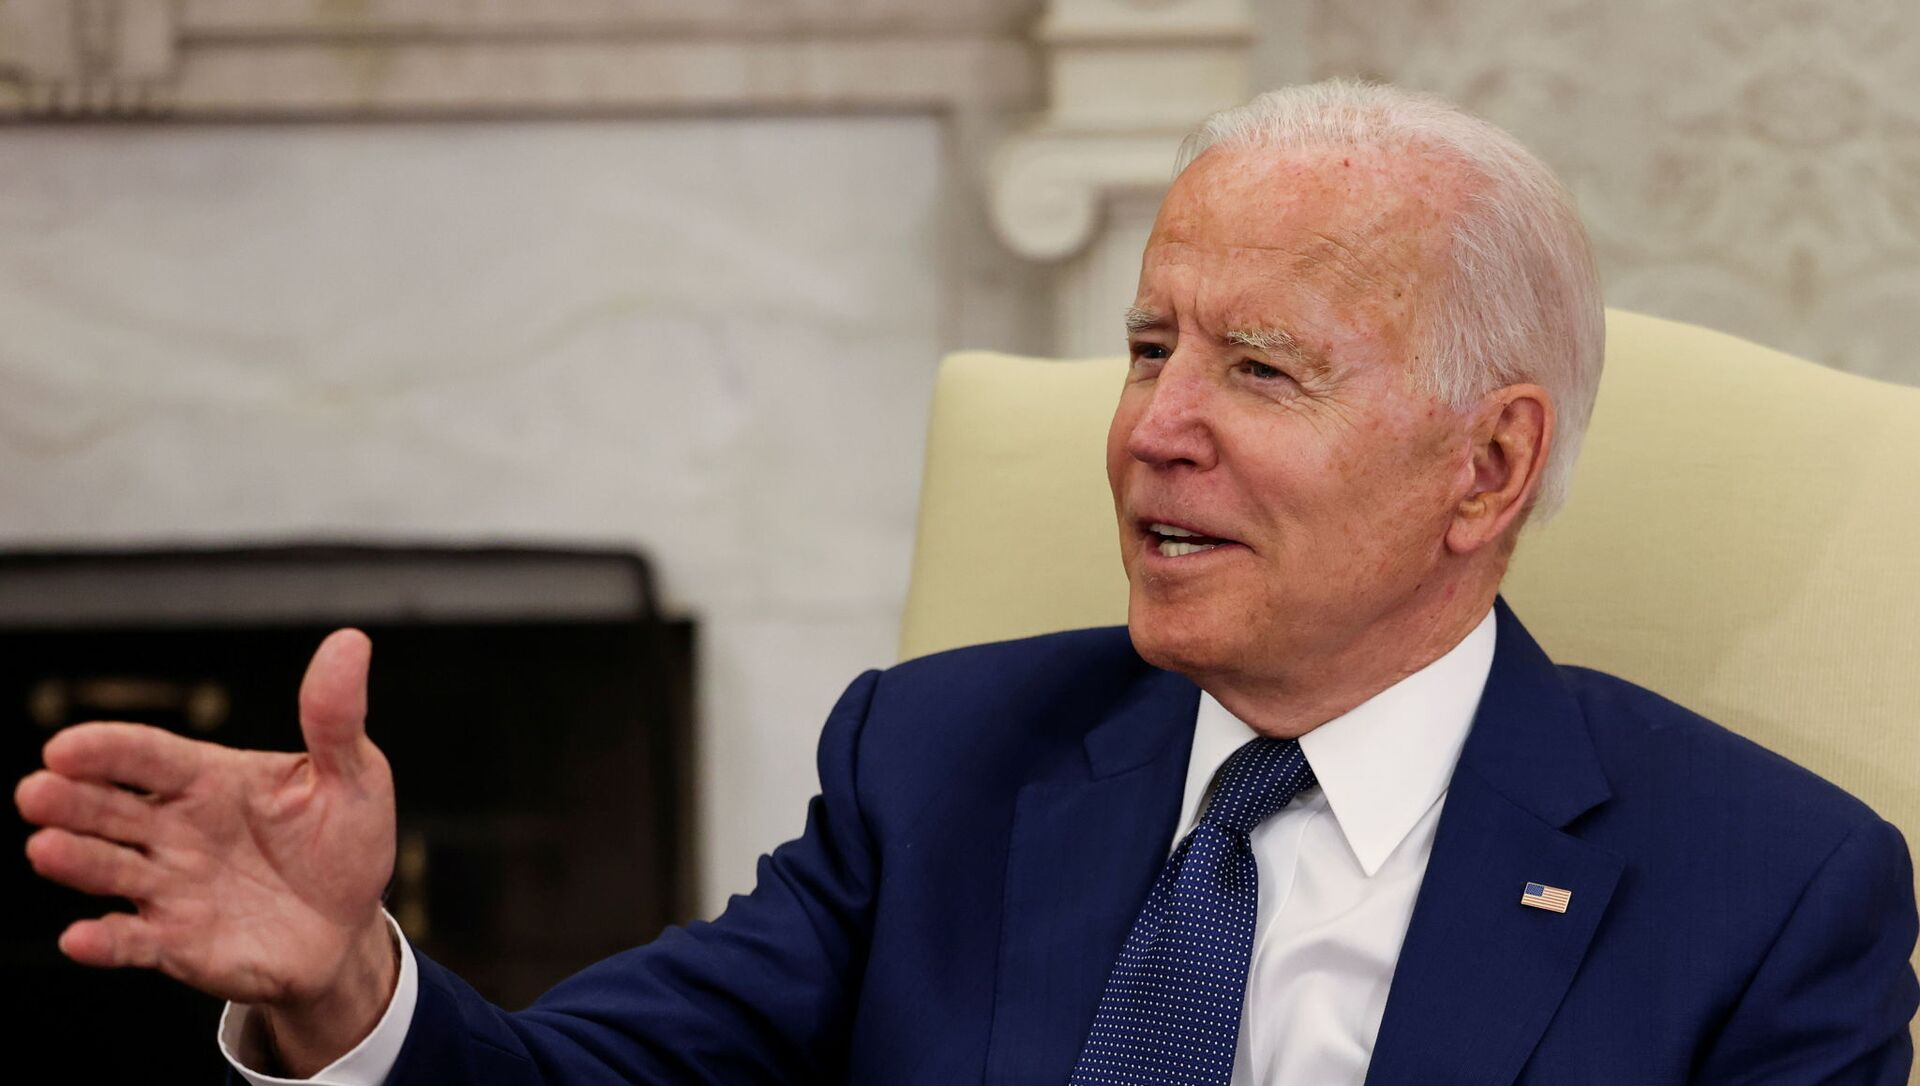 US President Joe Biden speaks during a bilateral meeting with Iraq's Prime Minister Mustafa Al-Kadhimi in the Oval Office at the White House in Washington, 26 July 2021 - Sputnik International, 1920, 27.07.2021